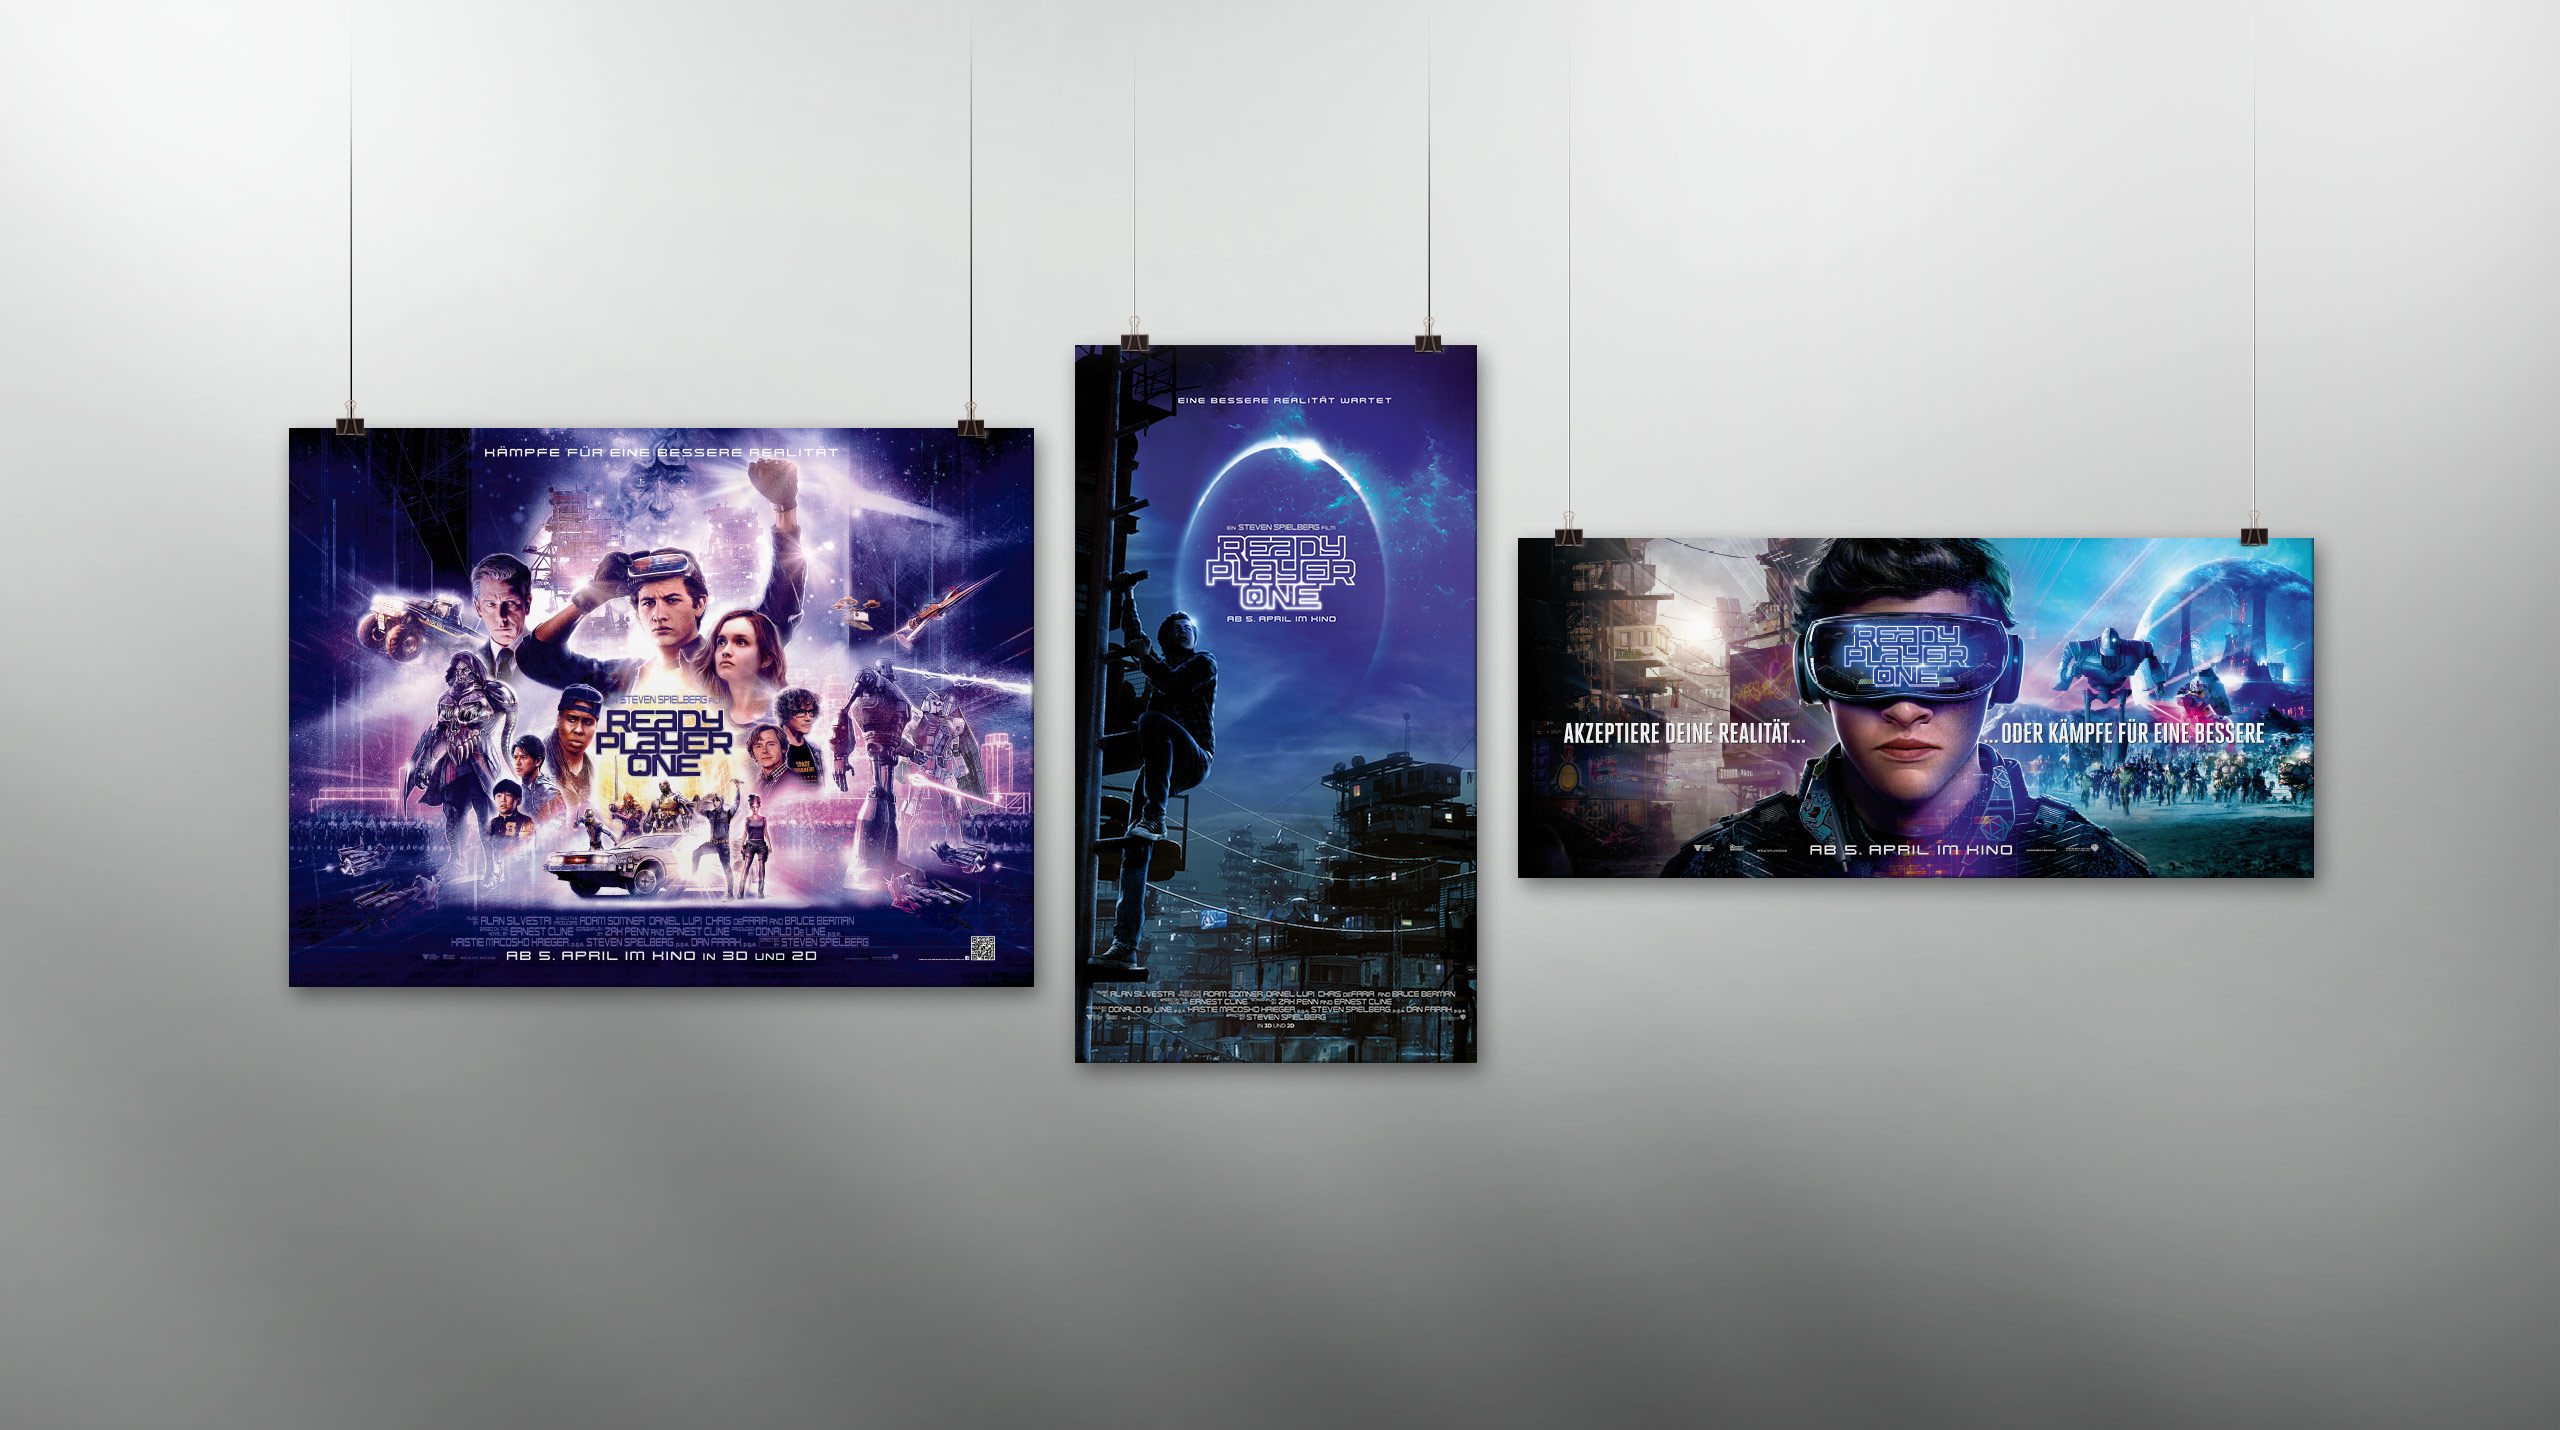 Warner Bros. Entertainment Ready Player One